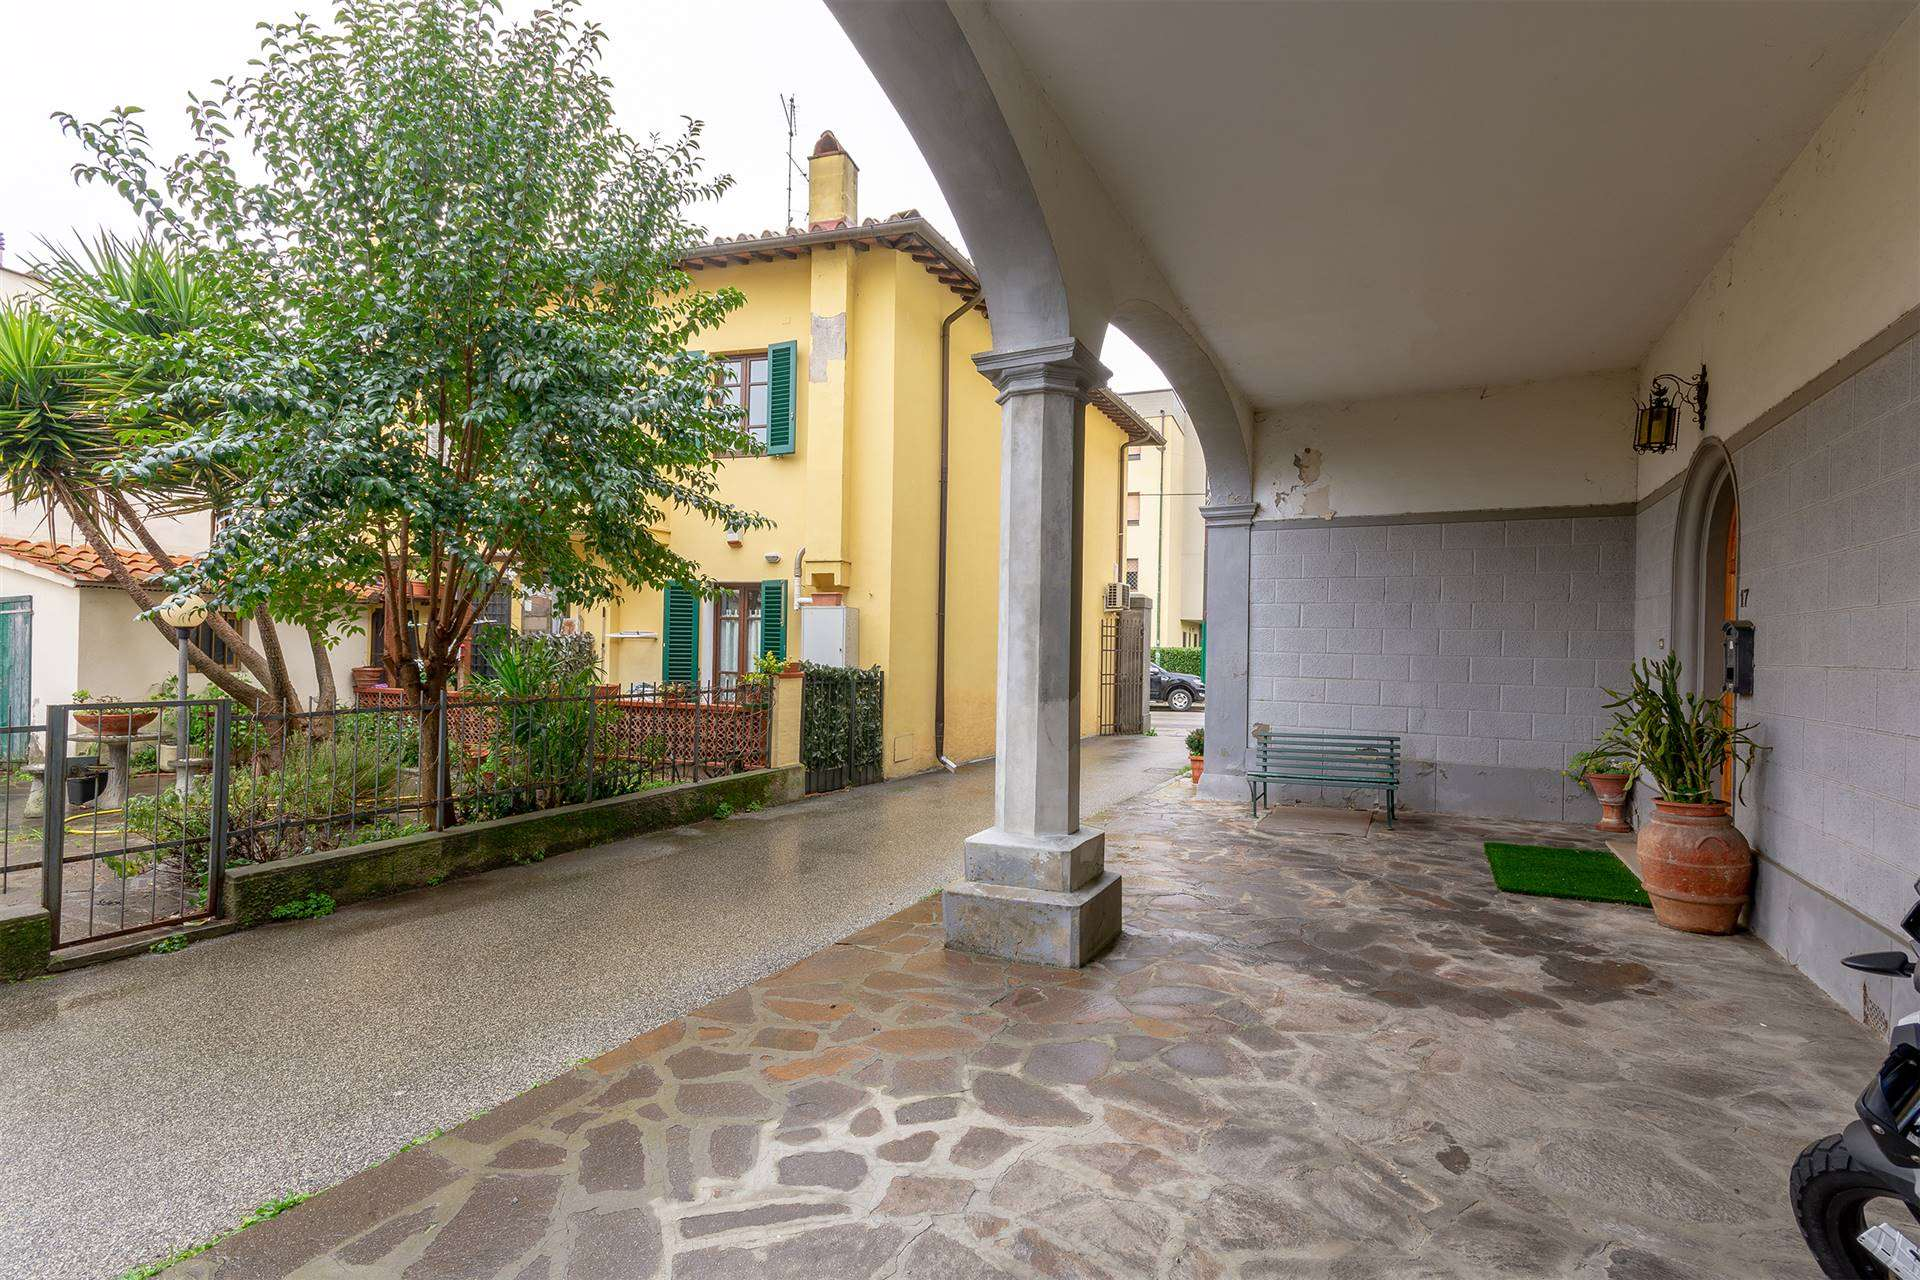 SAN MARTINO, CAMPI BISENZIO, terraced house for sale of 480 Sq. mt., Be restored, Heating Individual heating system, Energetic class: G, Epi: 175,61